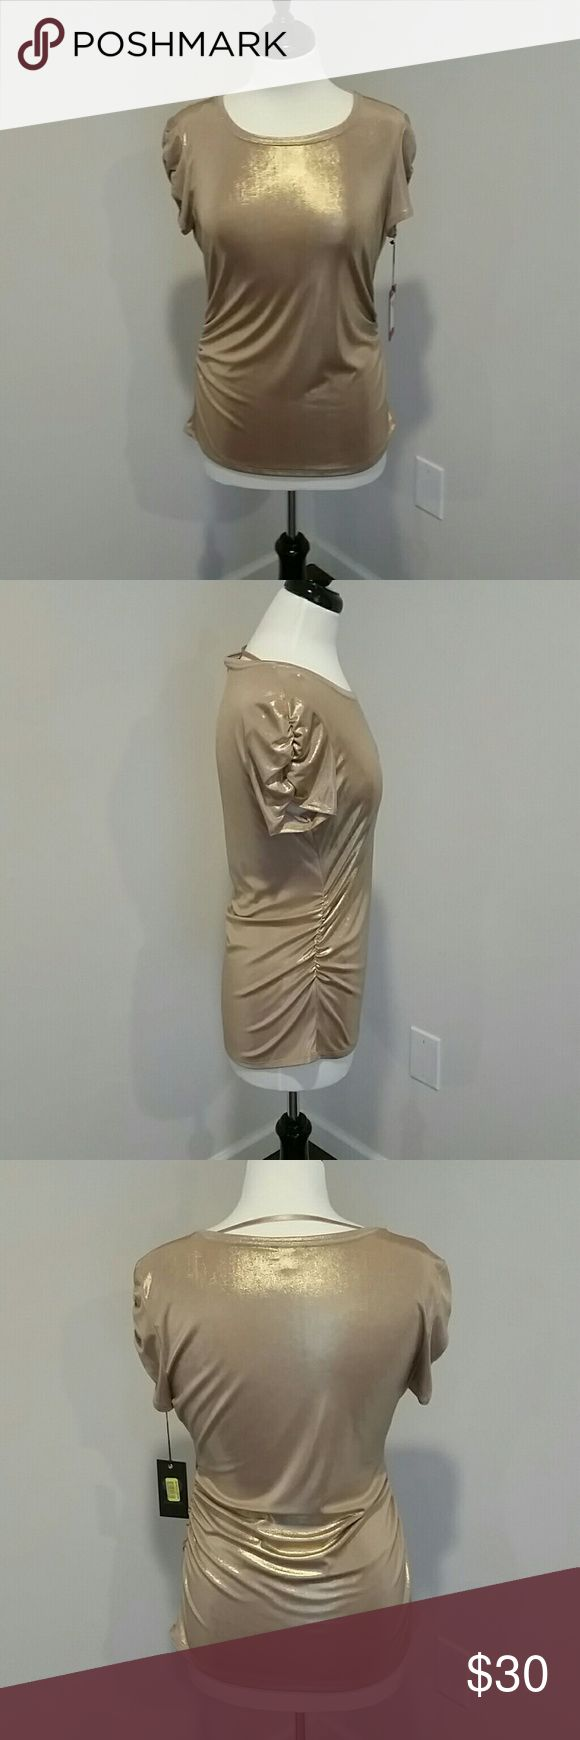 NEW VINCE CAMUTO GOLD METALLIC SHORT SLEEVE TOP GOLD METALLIC. CALLED GOLD LUSTER BY CO. A LOT OF RUCHING ON SIDES AND ON SLEEVES. STRETCHY POLYESTER AND SPANDEX  BLEND. SEMI LONG LENGTH COULD WEAR WITH LEGGINGS,  PANTS, SKIRTS.  VERY CUTE . VINCENT CAMUTO Tops Tees - Short Sleeve